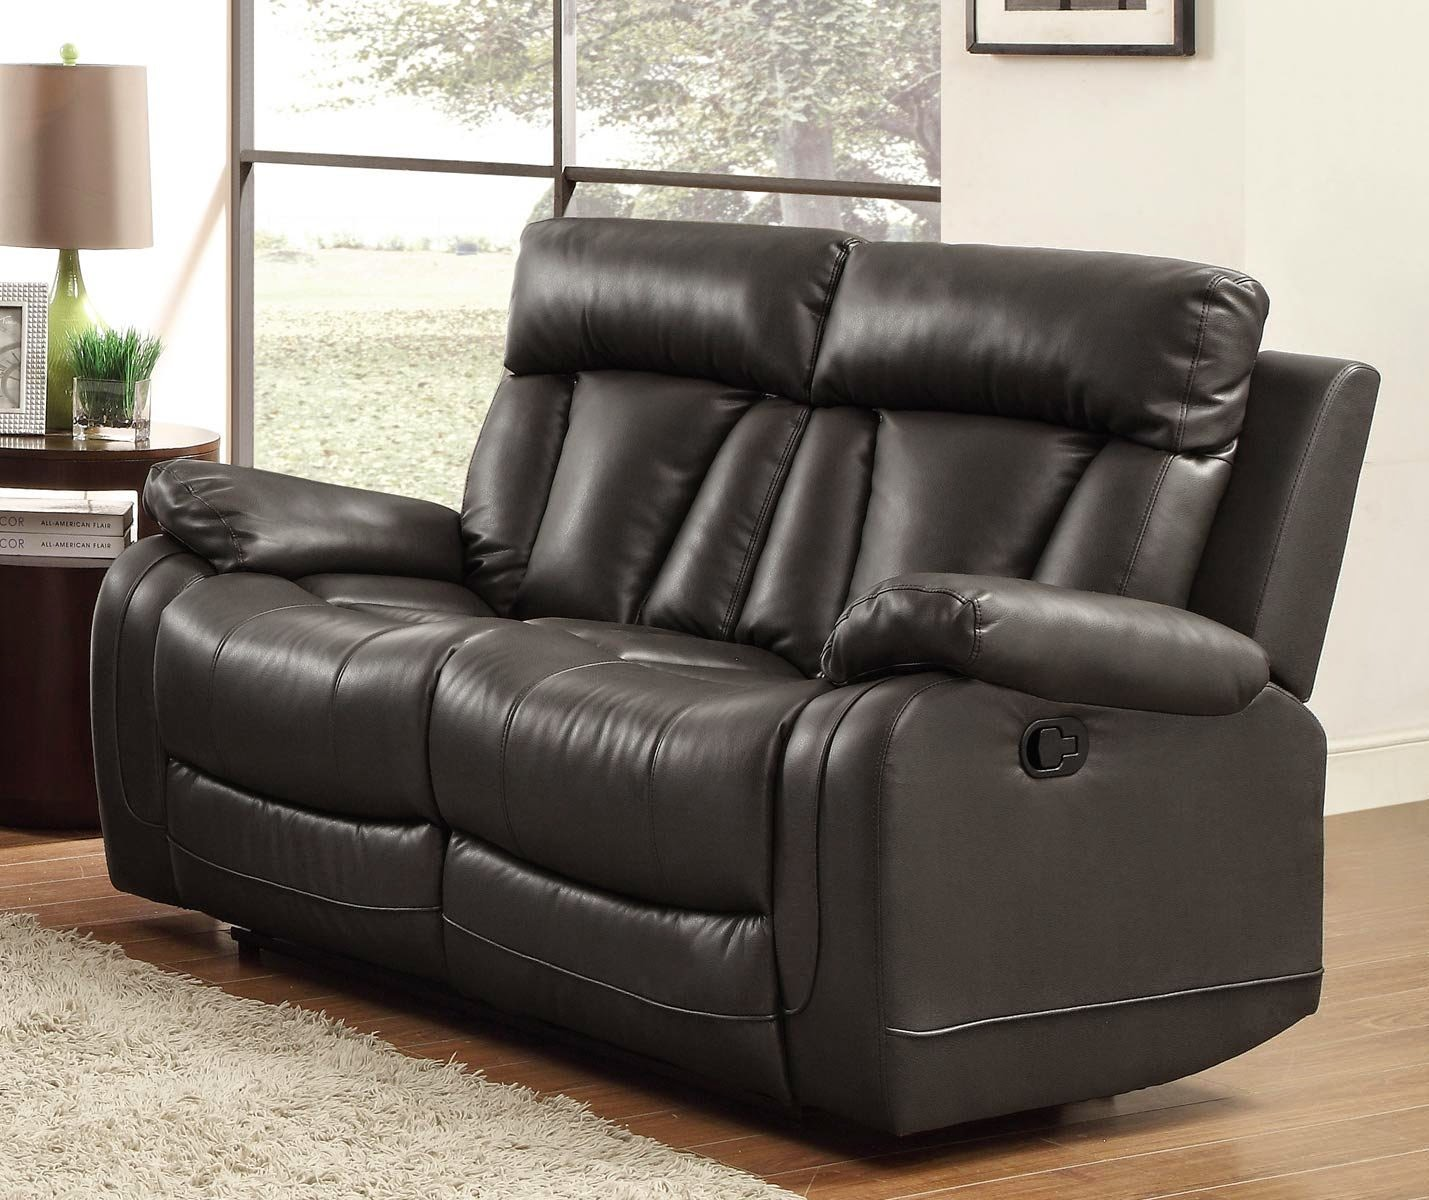 recliner sofas for sale black leather reclining sofa and loveseat - Black Leather Loveseat